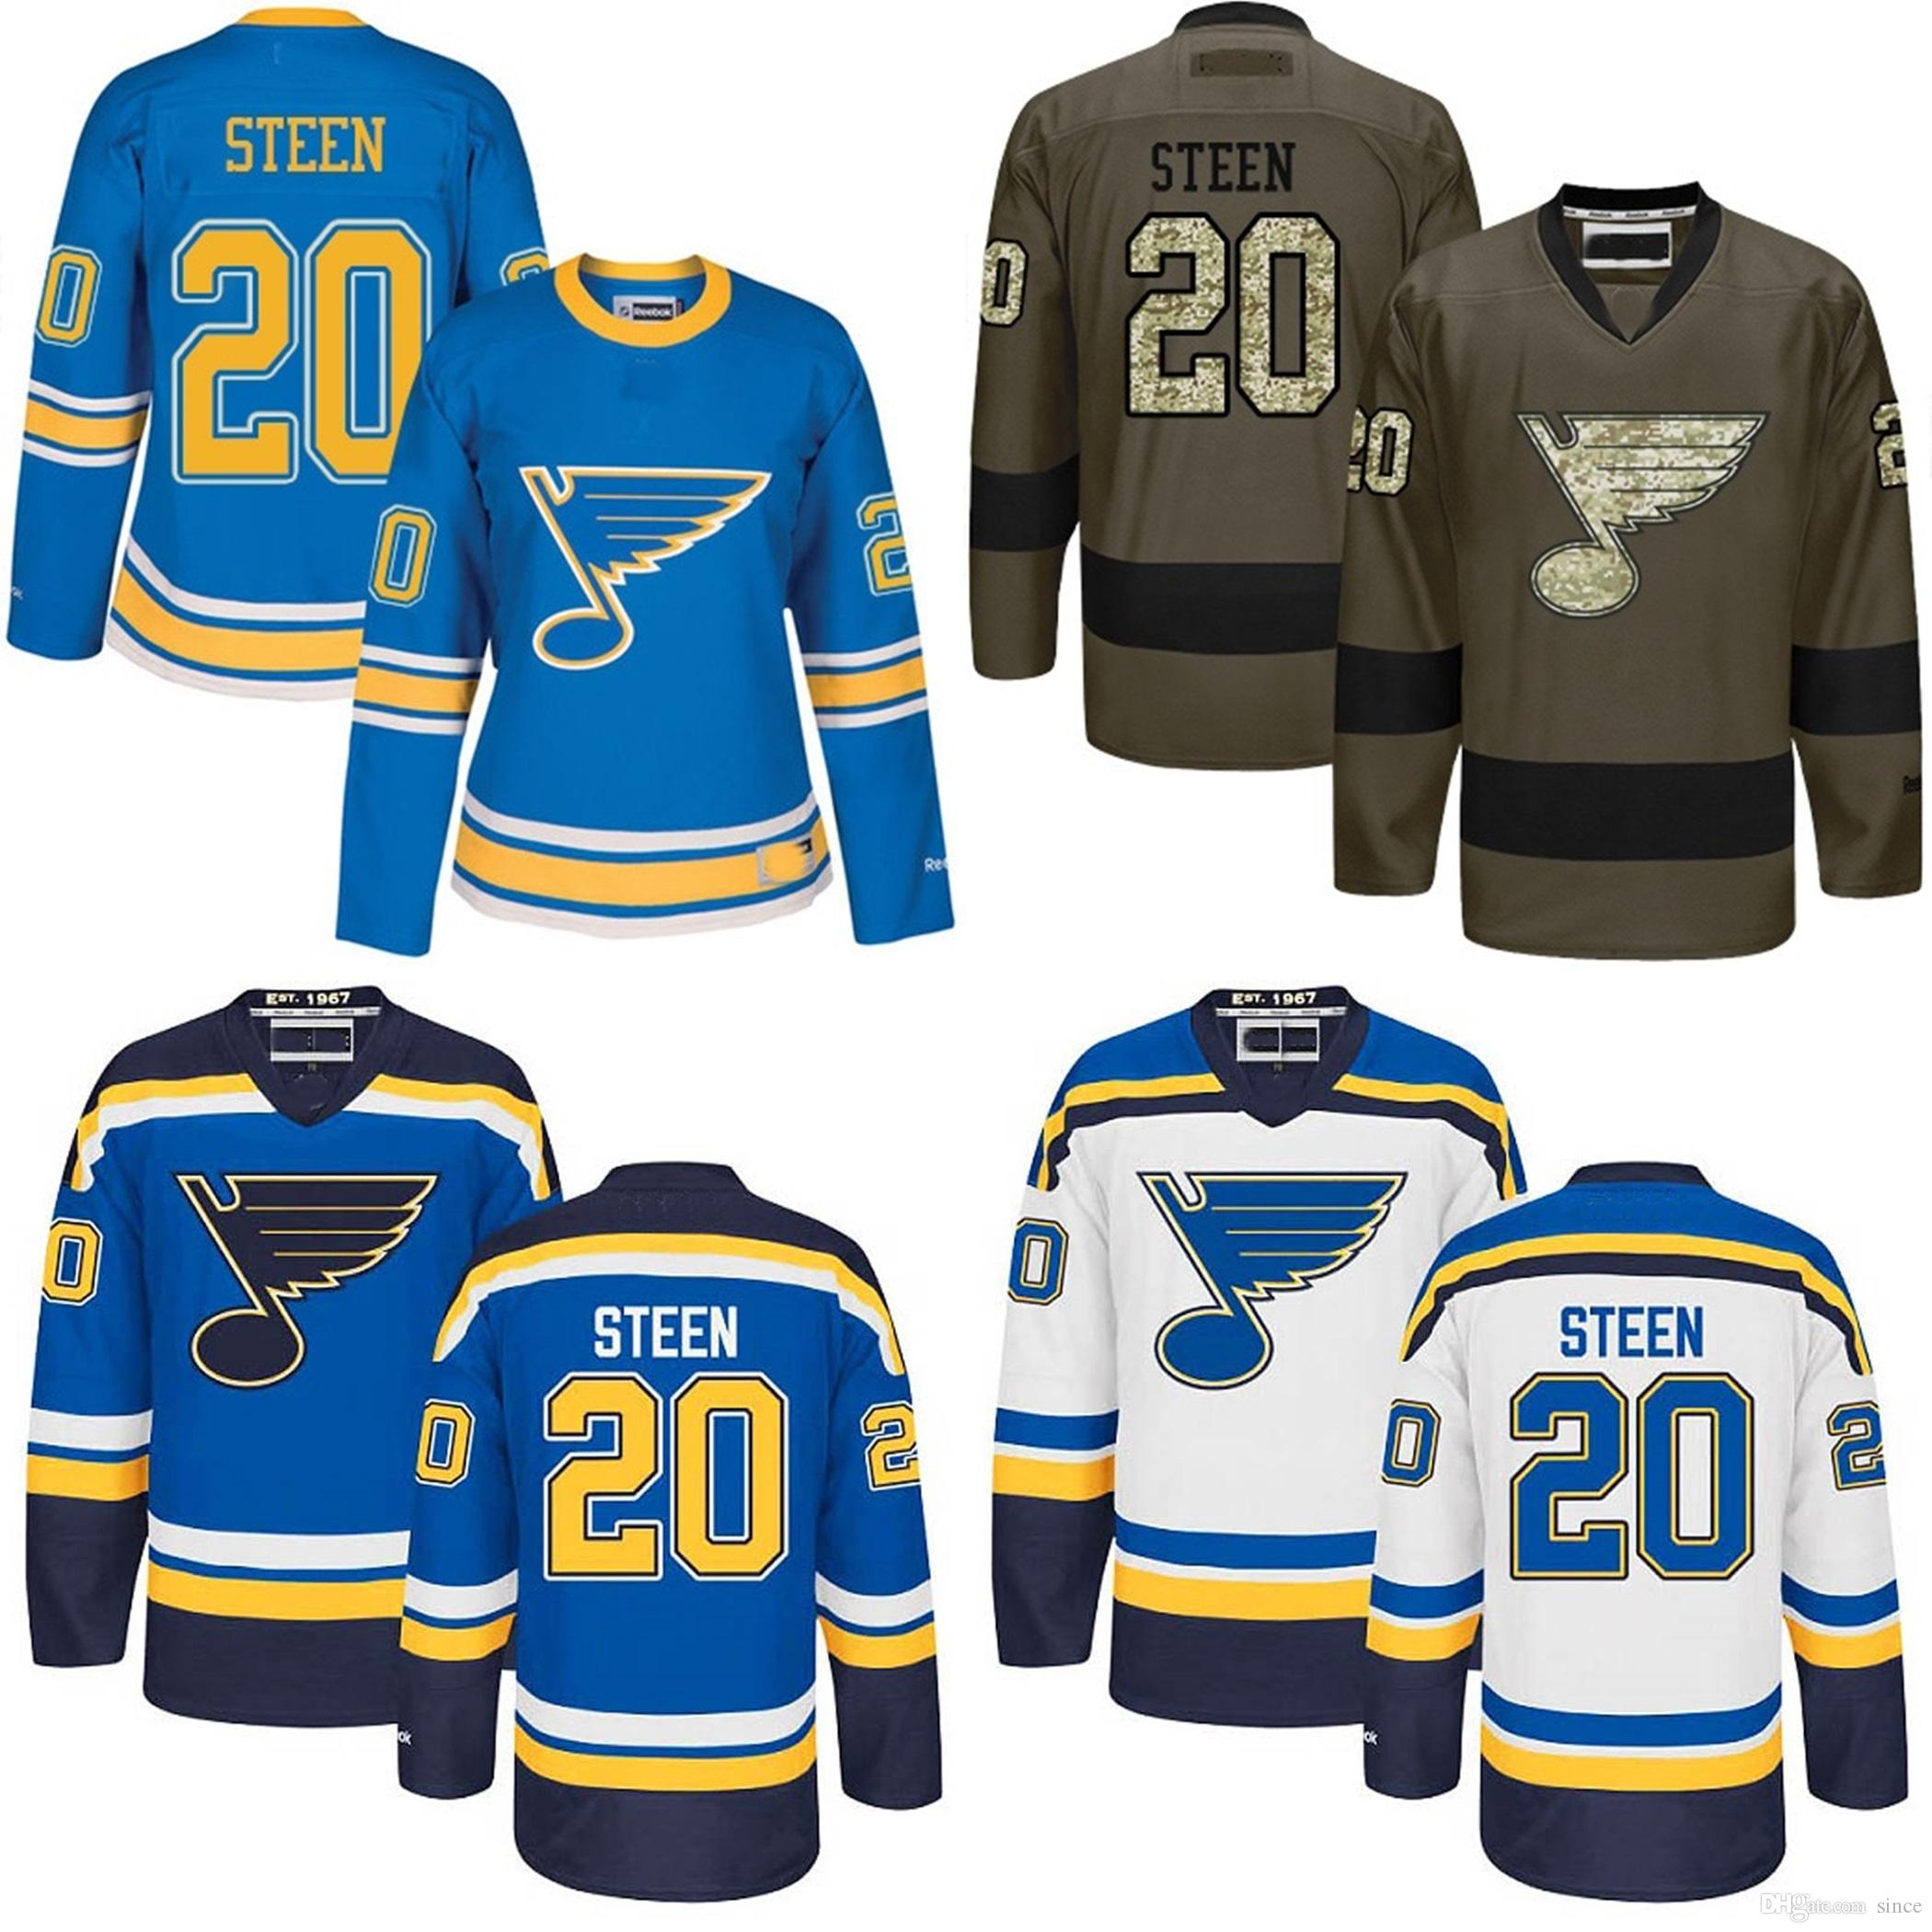 more photos b0ace d1f14 2016 New Mens 20 Alexander Steen Jersey White Blue Grey 100% Stitched  St.Louis Blues Steen High quality Ice Hockey Jerseys Shirt